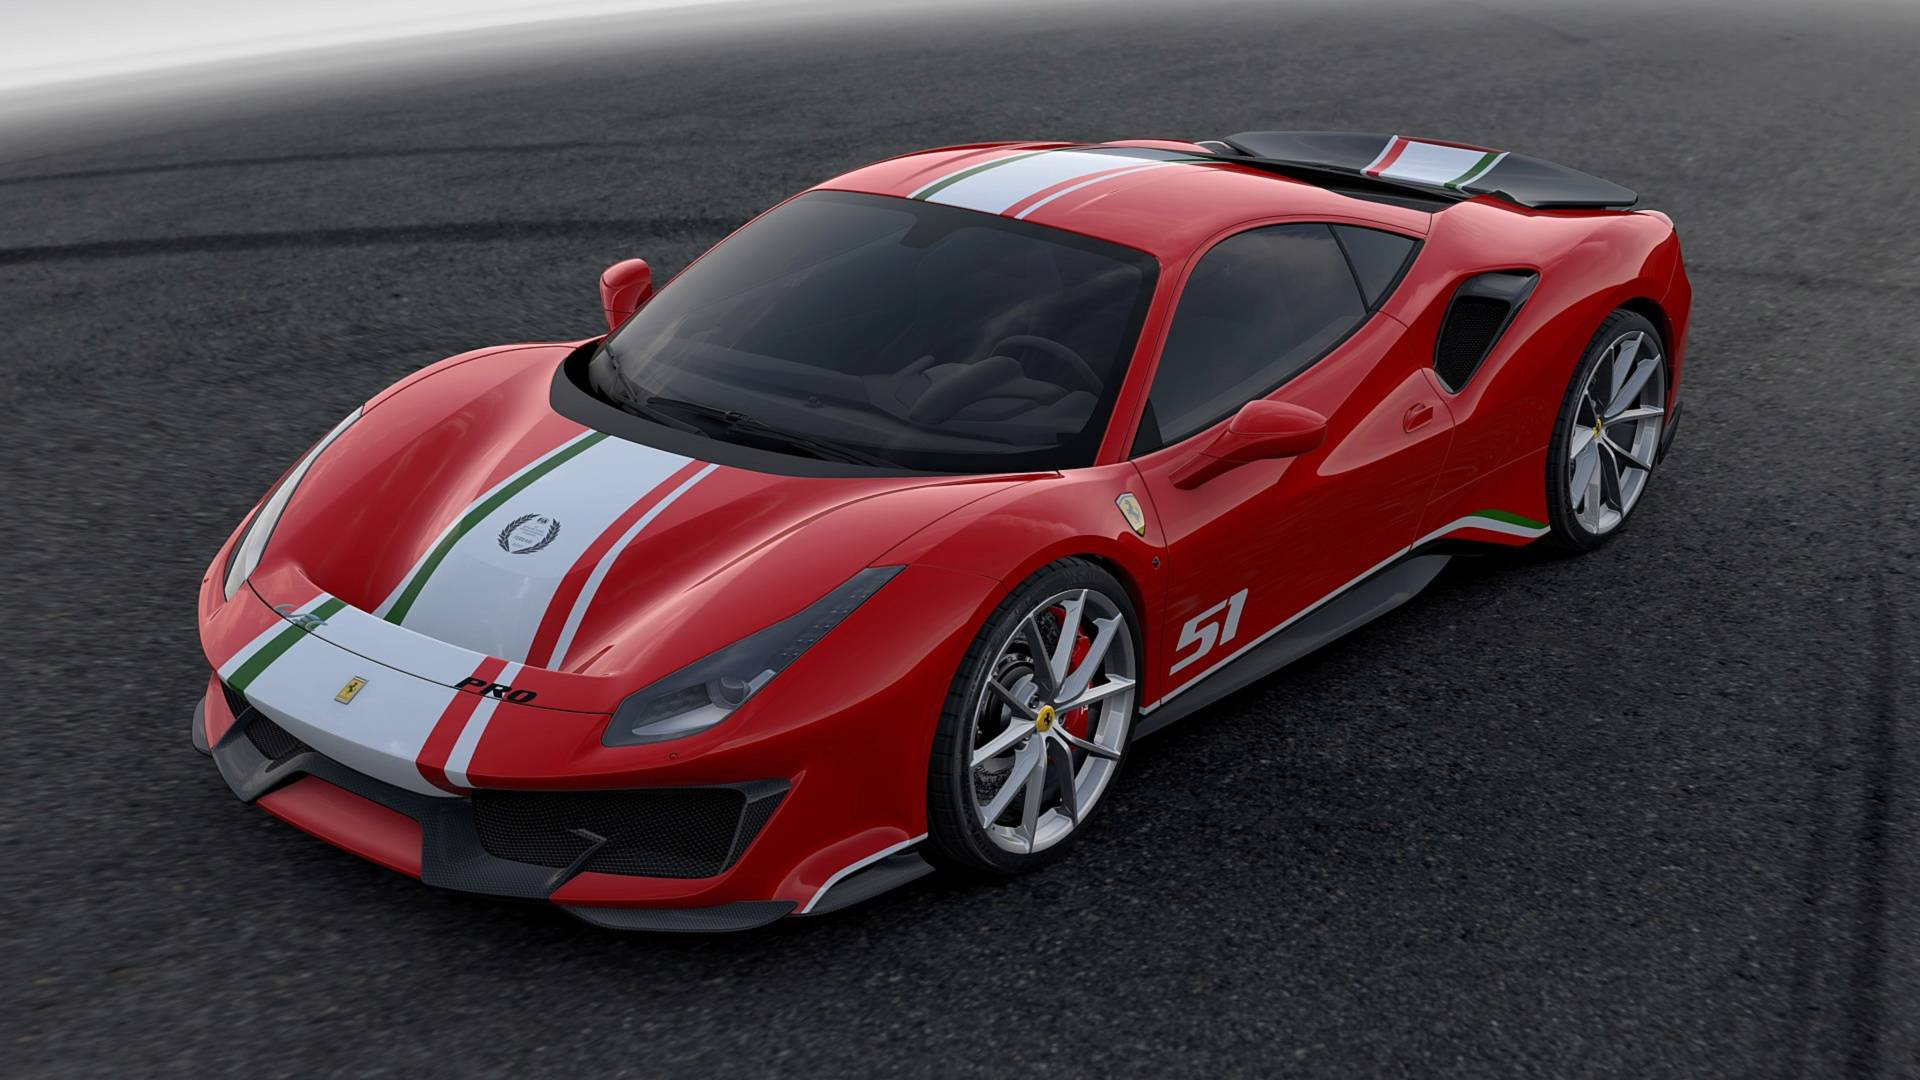 Ferrari 488 Pista Piloti Isn't For the Average Joe